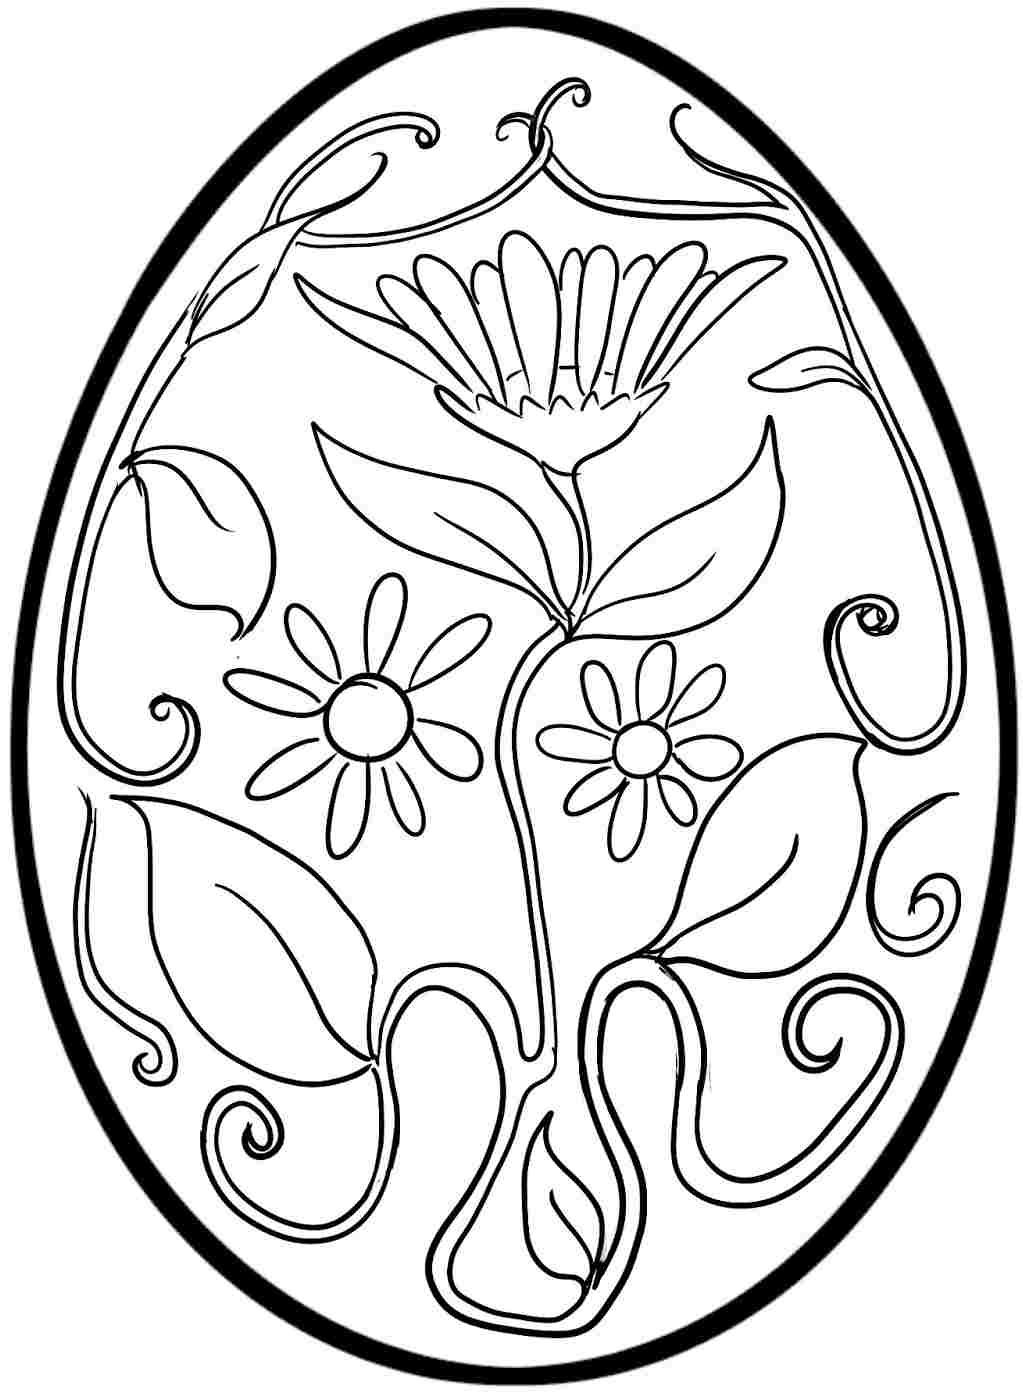 Free Printable Easter Egg Coloring Pages Only Coloring Pages Coloring Easter Eggs Easter Egg Coloring Pages Easter Egg Printable